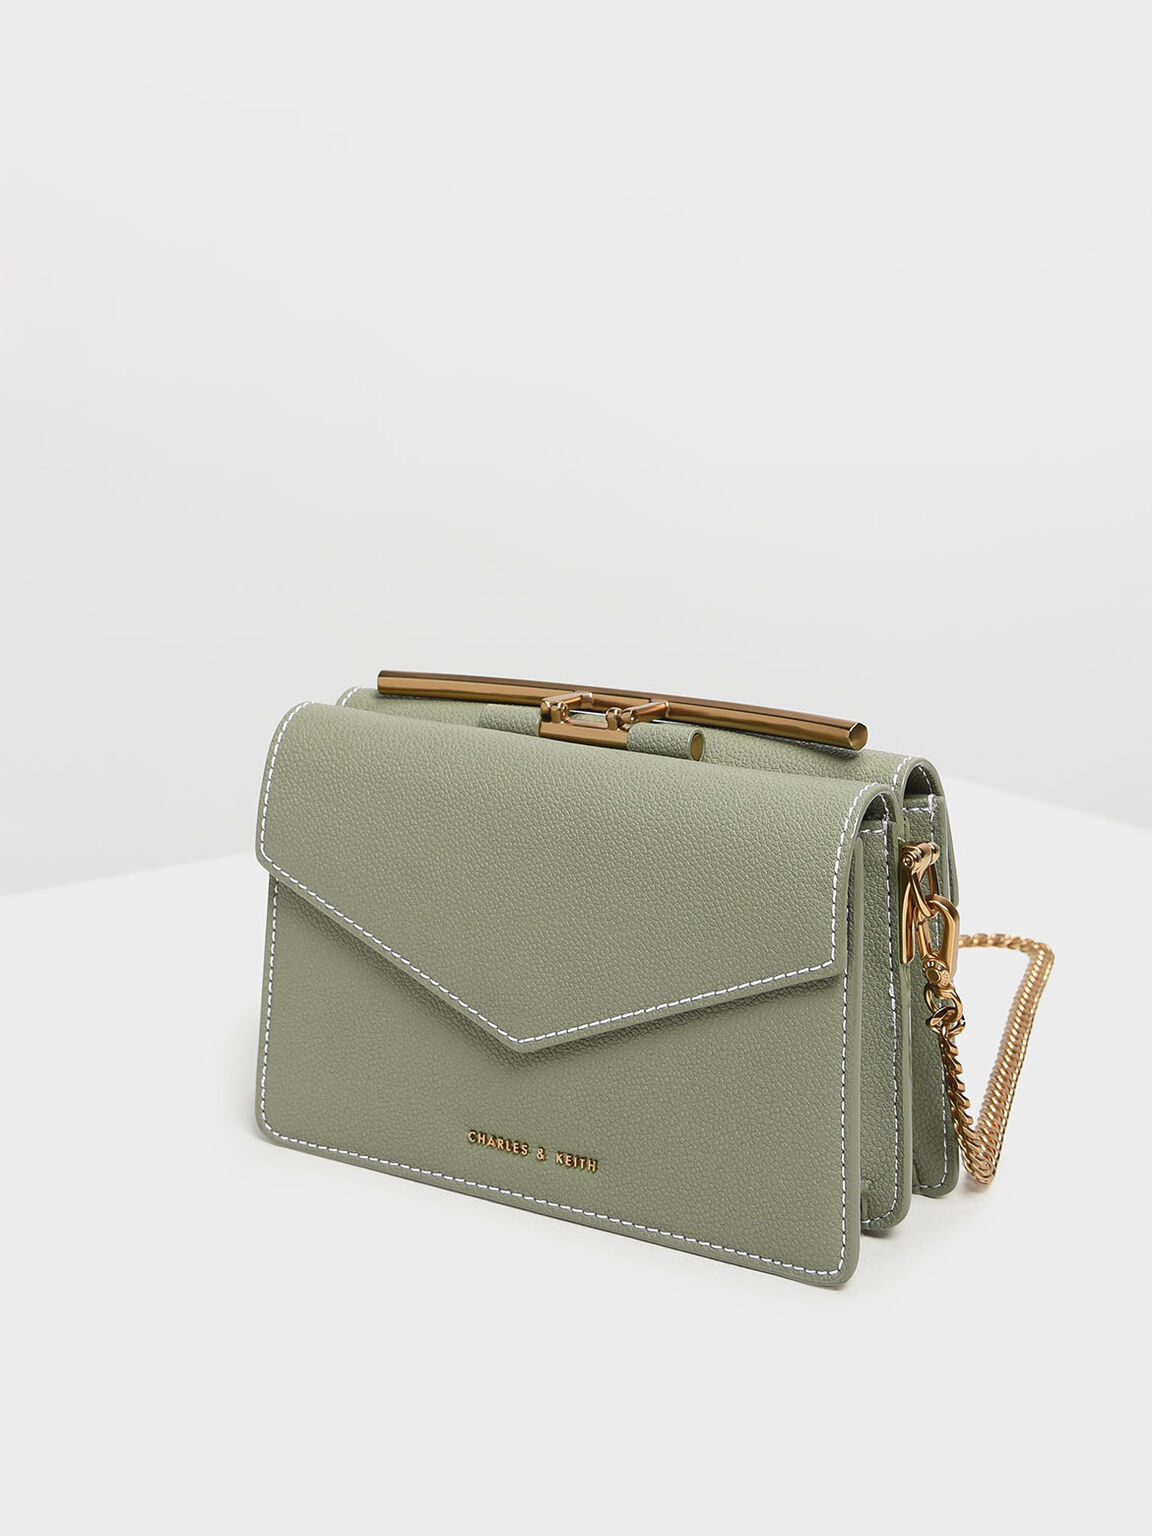 Stone Embellished Shoulder Bag, Sage Green, hi-res